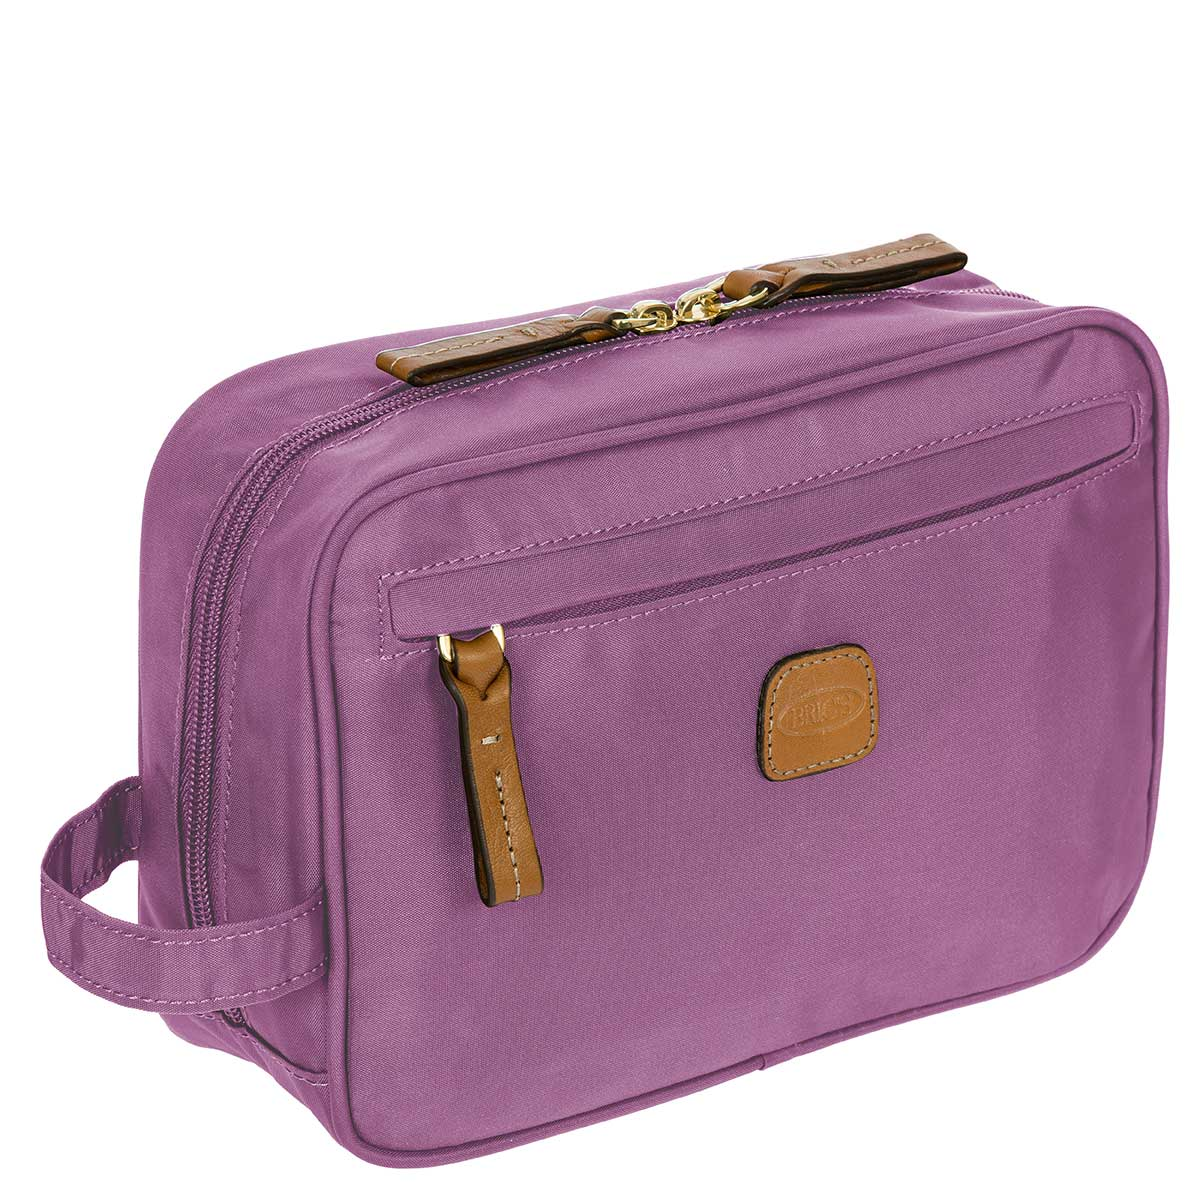 X-Bag Toiletry Bag - Wisteria | BRIC'S Travel Bag